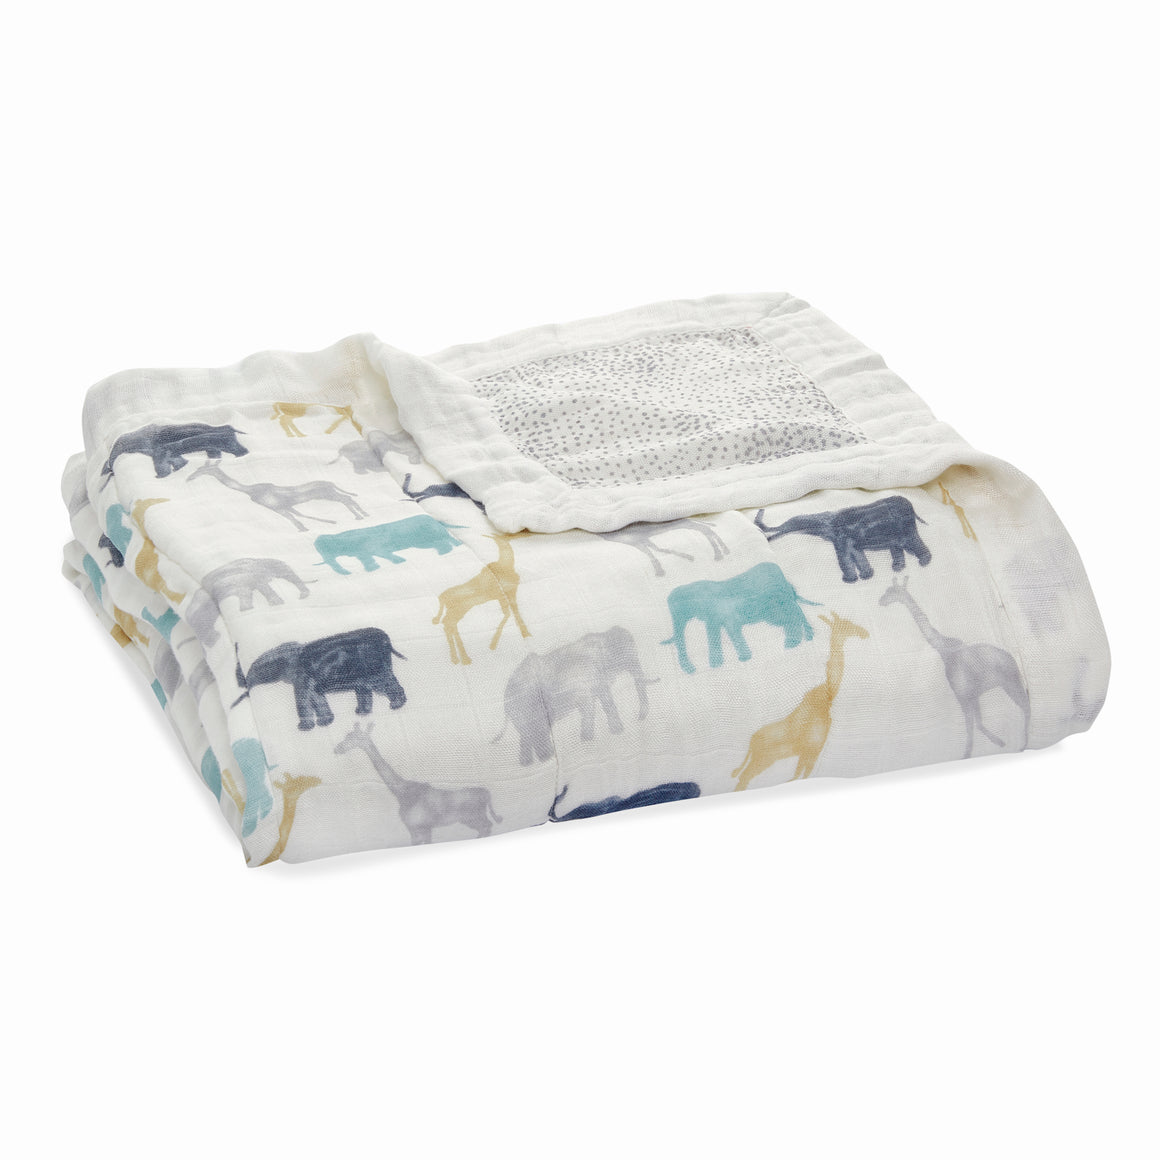 aden + anais expedition silky soft bamboo muslin dream blanket